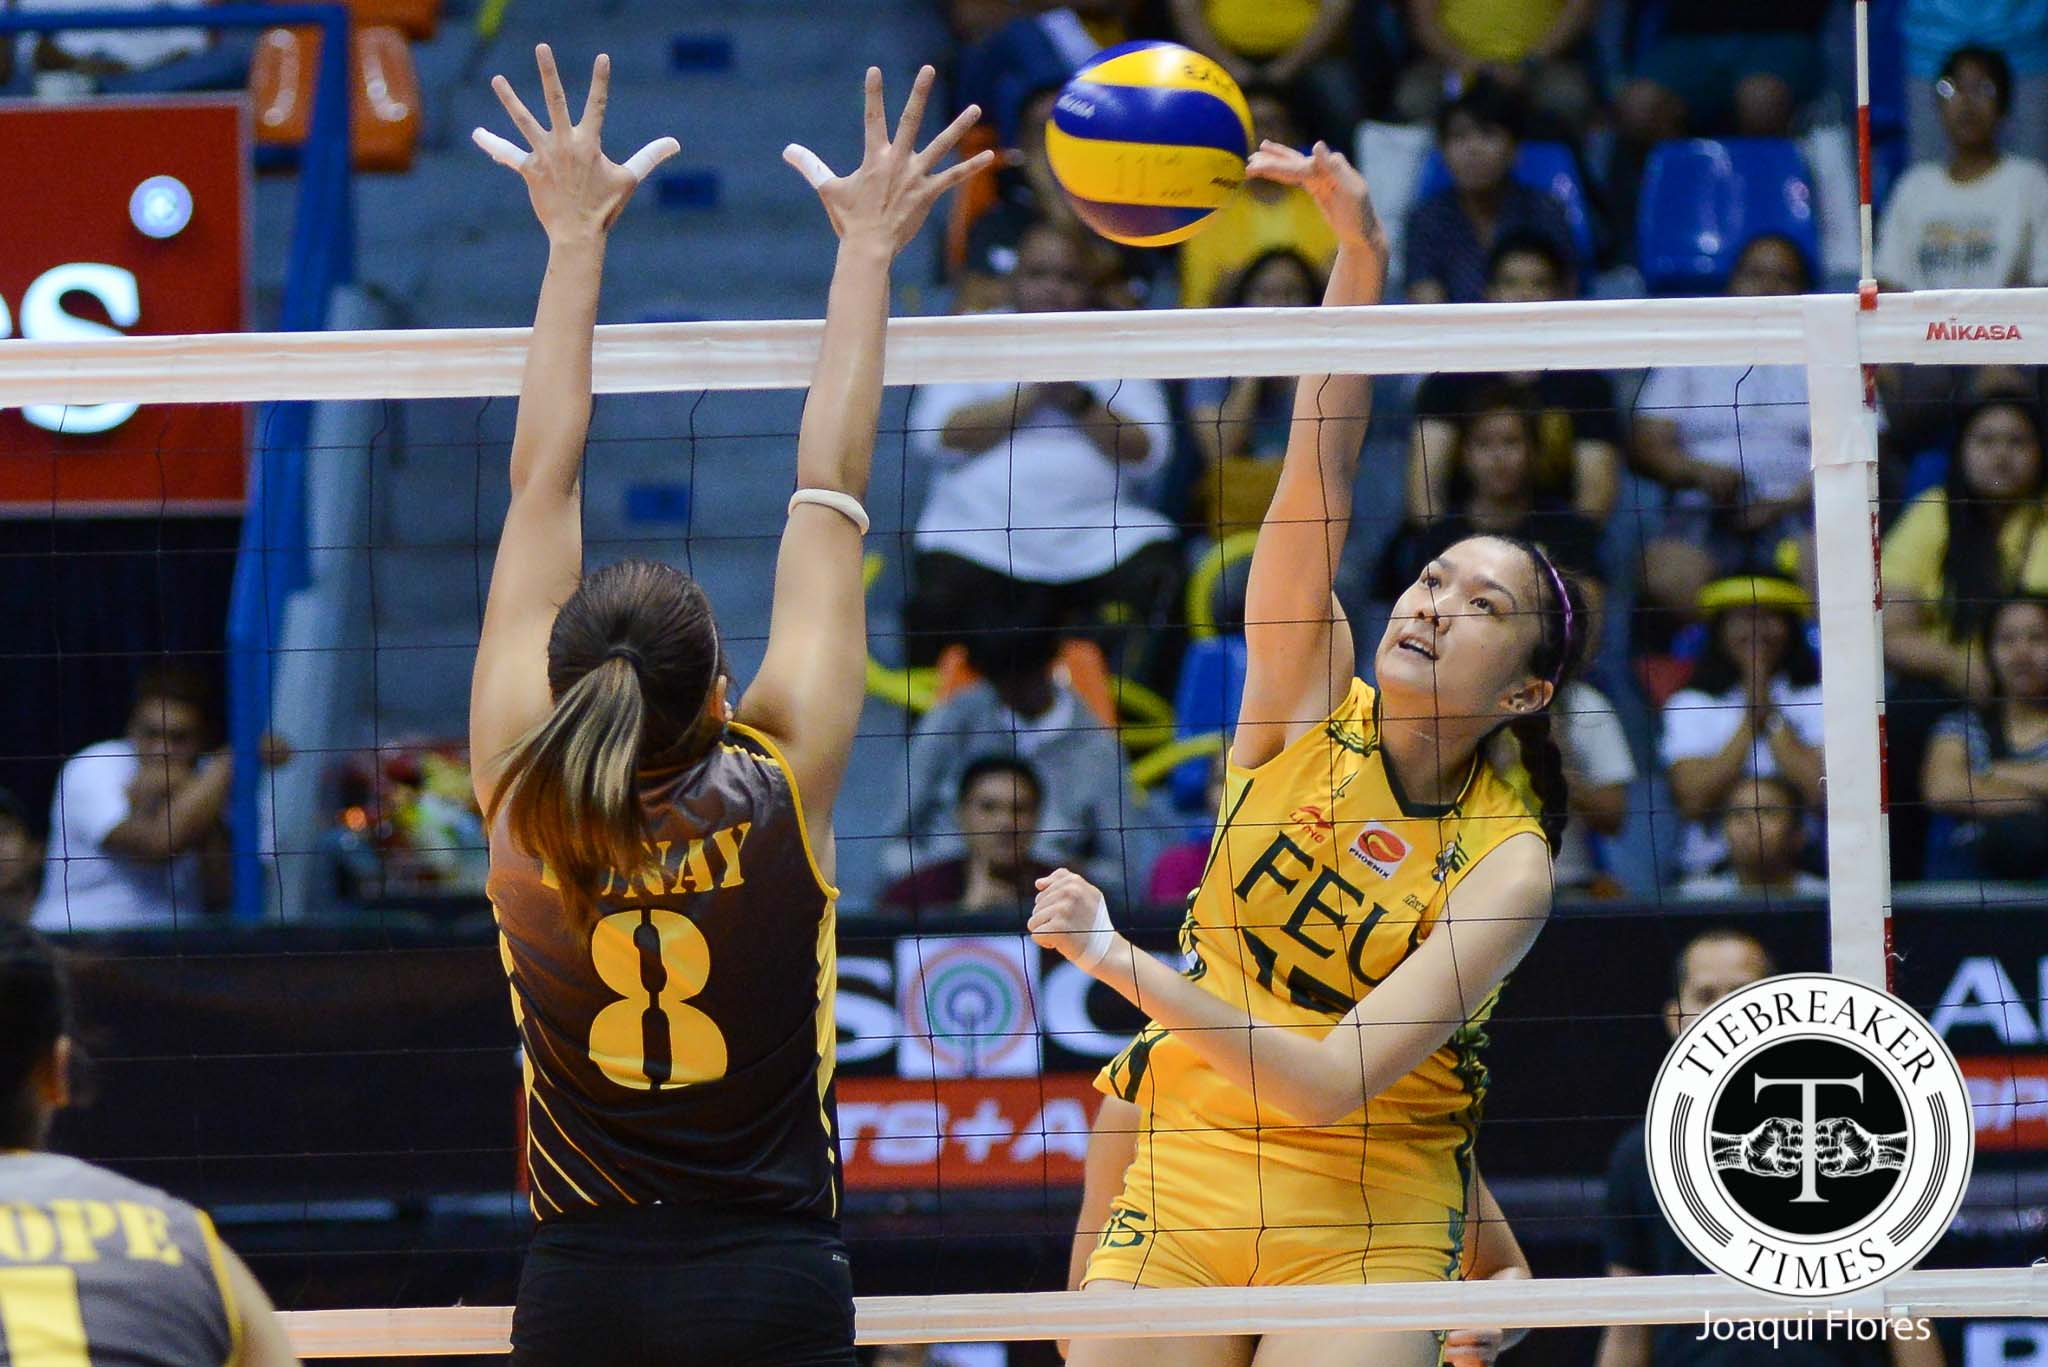 Tiebreaker Times FEU drops UST, gains vital cushion for Final Four push News NU UAAP UP Volleyball  UST Women's Volleyball UAAP Season 78 Women's Volleyball UAAP Season 78 Toni Basas Shaq delos Santos RJ Rivera Ria Duremdes Mela Tunay Kung Fu Reyes Jerrili Malabanan FEU Women's Volleyball EJ Laure Chery Rondina Bernadeth Pons